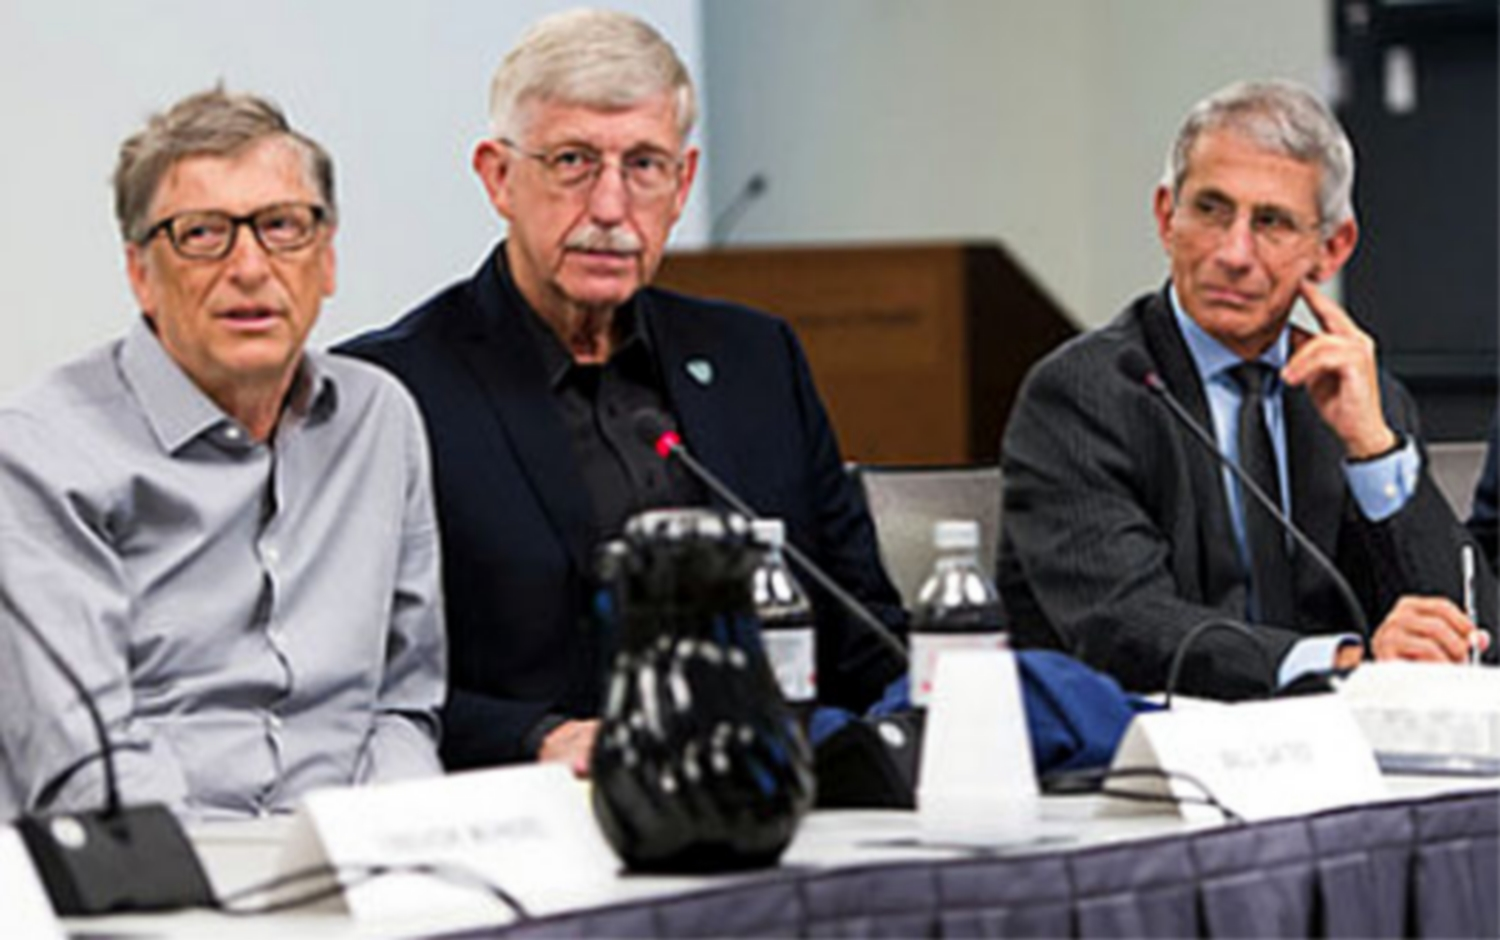 Bill Gates, left, NIH director Dr. Francis Collins and NIAID director Dr. Anthony Fauci at a 2017 Gates Foundation global health workshop on topics that included vaccine research.